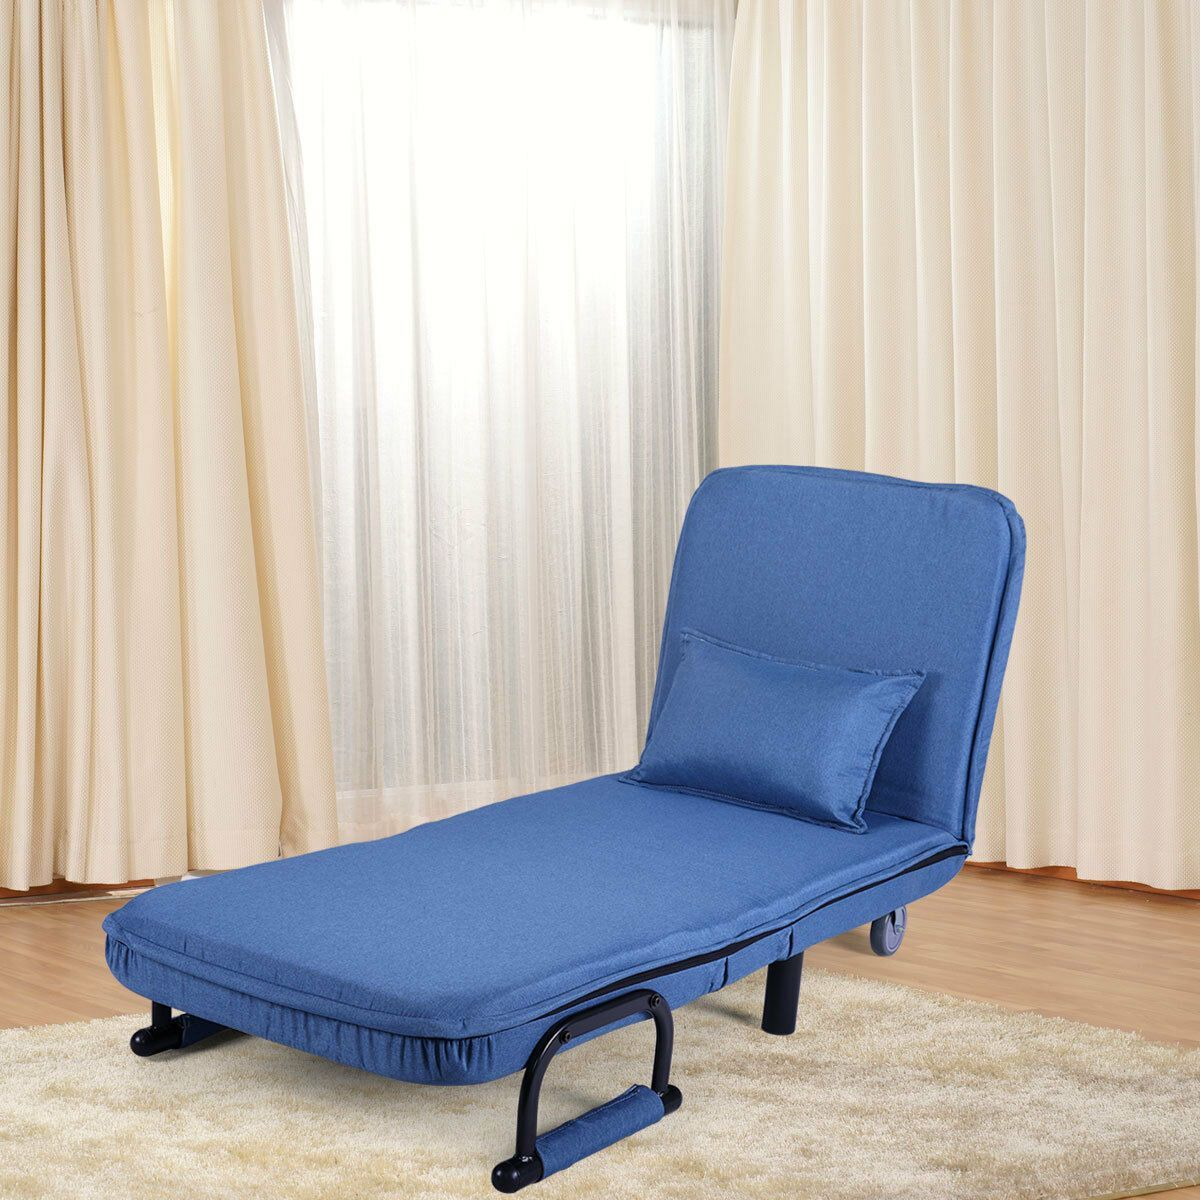 Convertible Sleeper Flip Chair Pullout Bed Single Couch